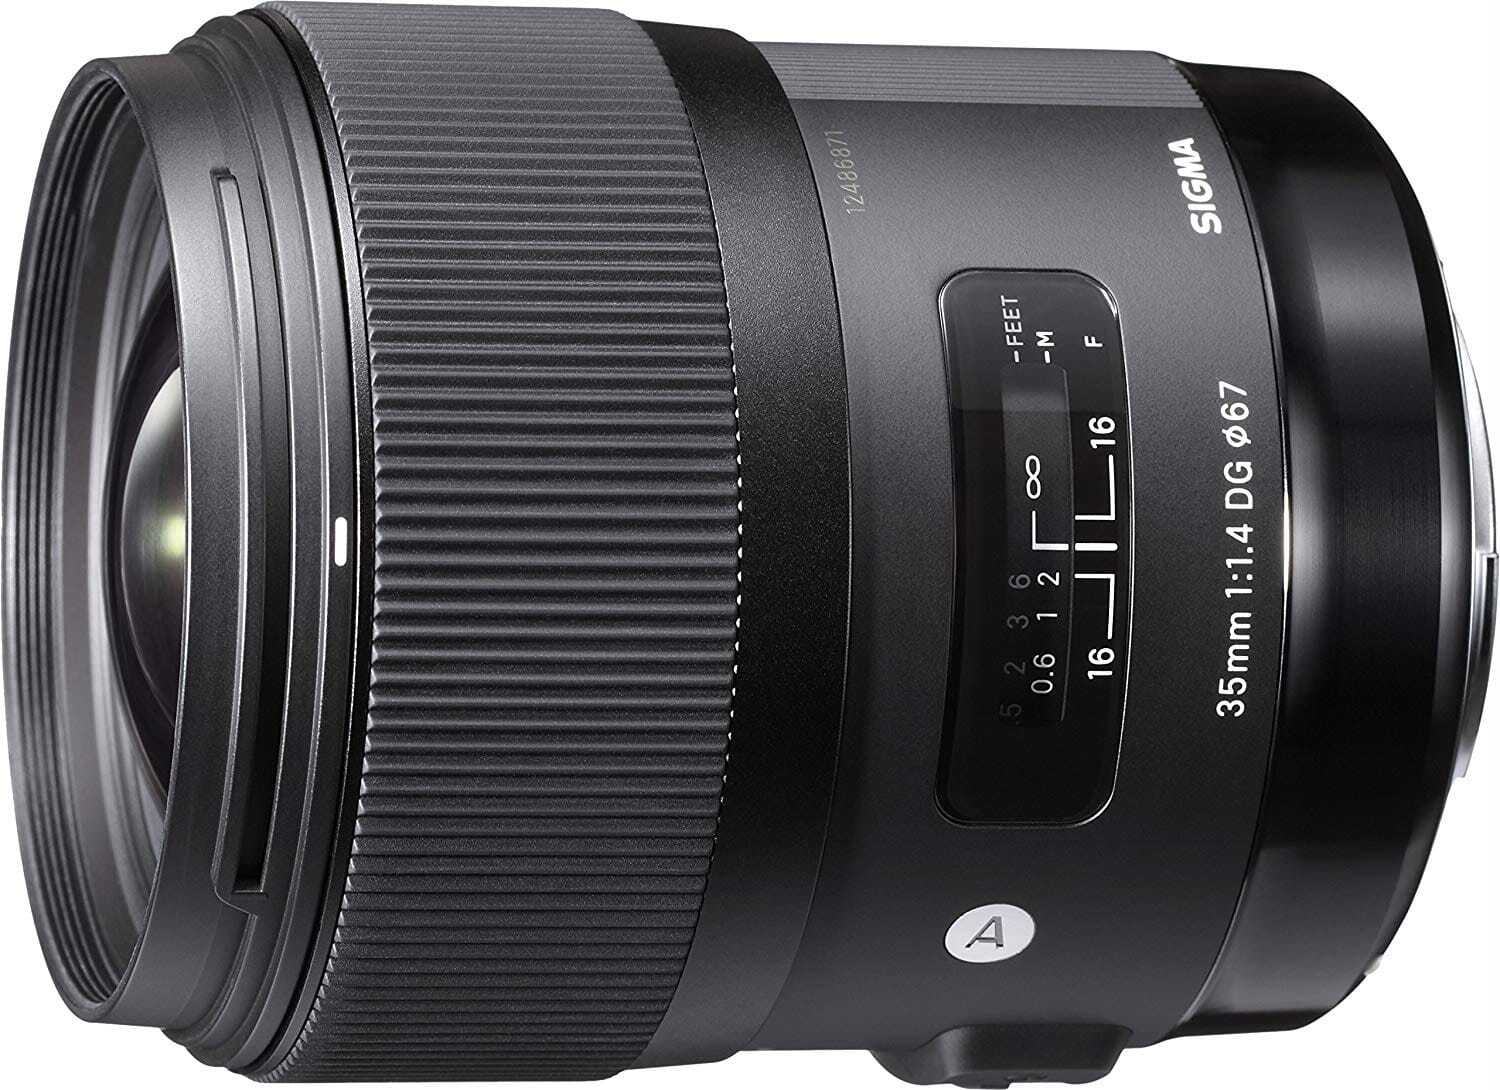 Sigma art 35mm best street photography lens for nikon